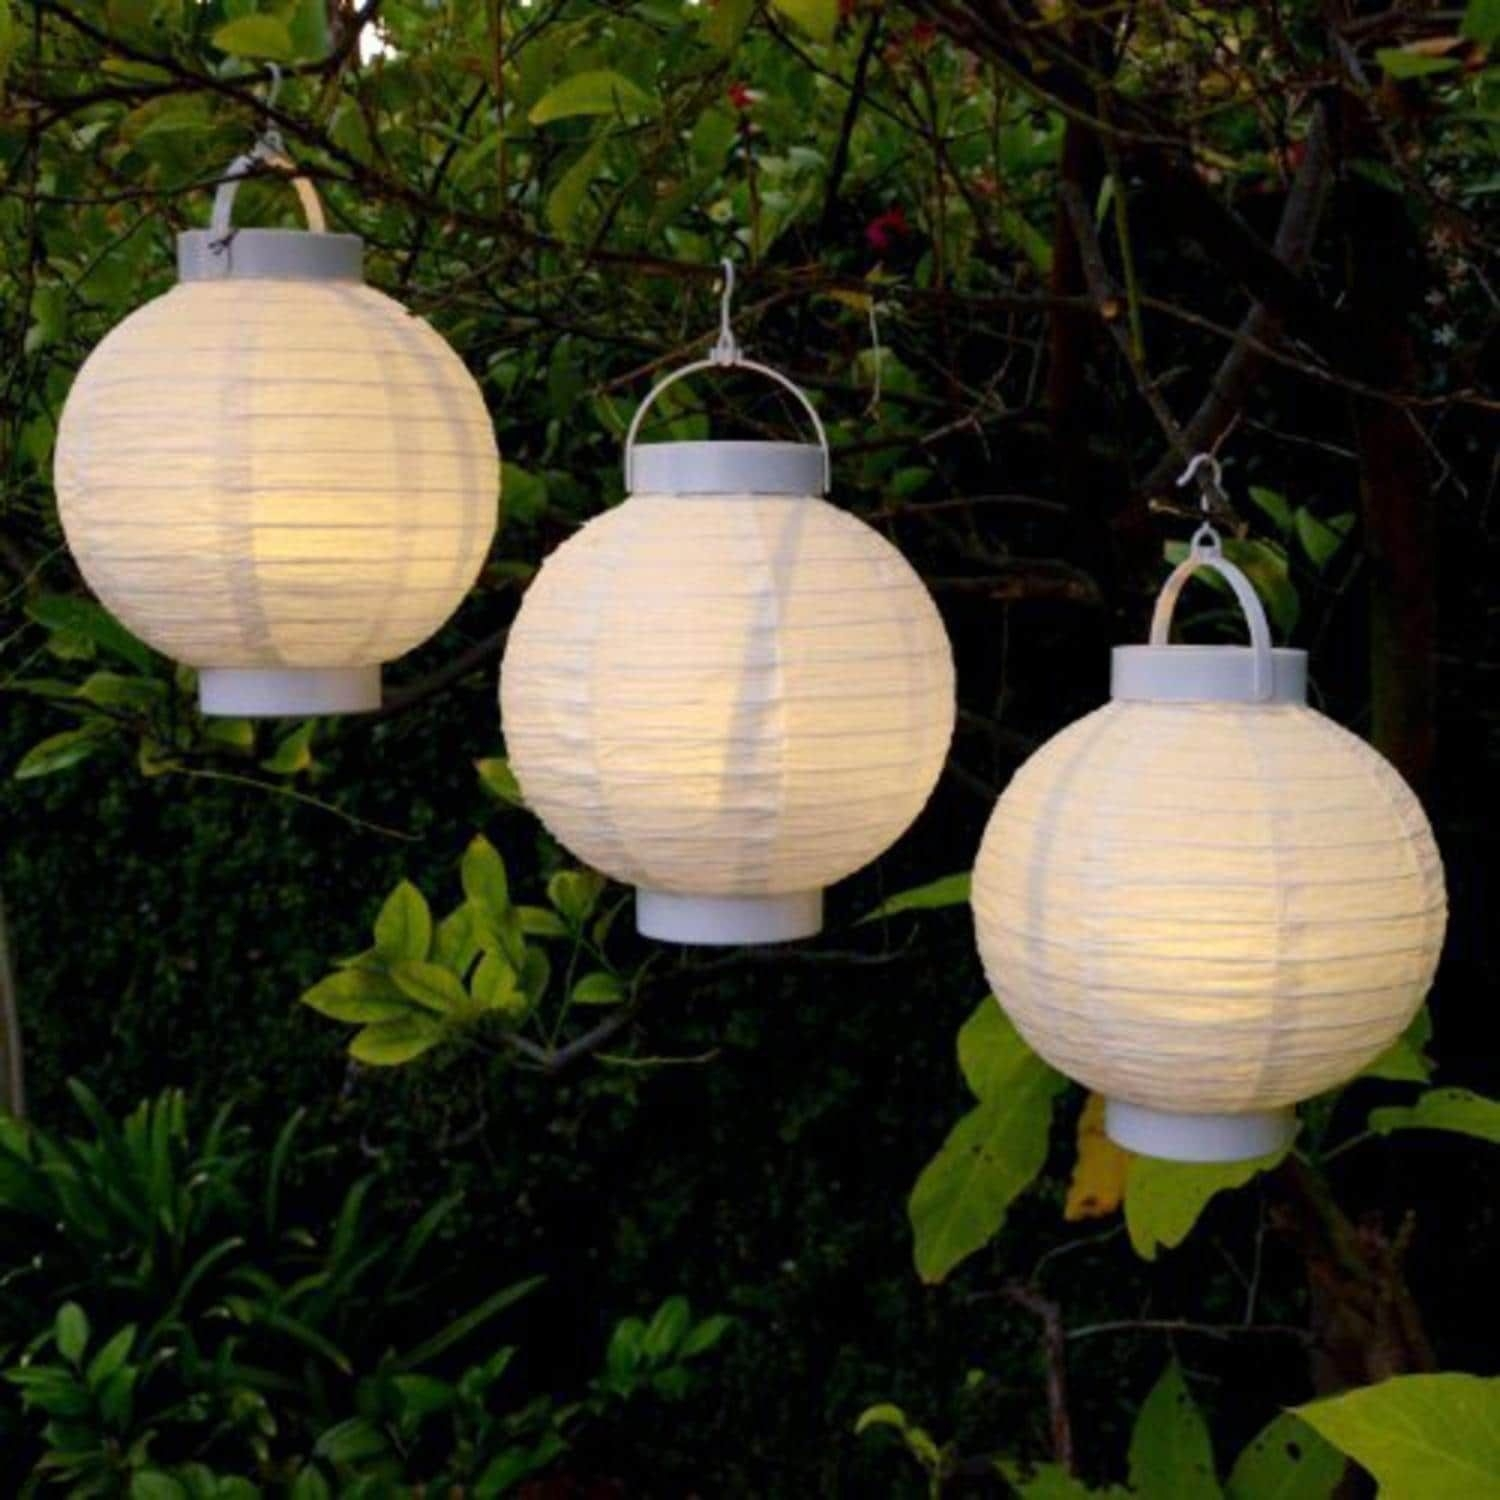 Sienna Set Of 3 Battery Operated Led Lighted White Fabric Outdoor with regard to Outdoor Chinese Lanterns for Patio (Image 19 of 20)